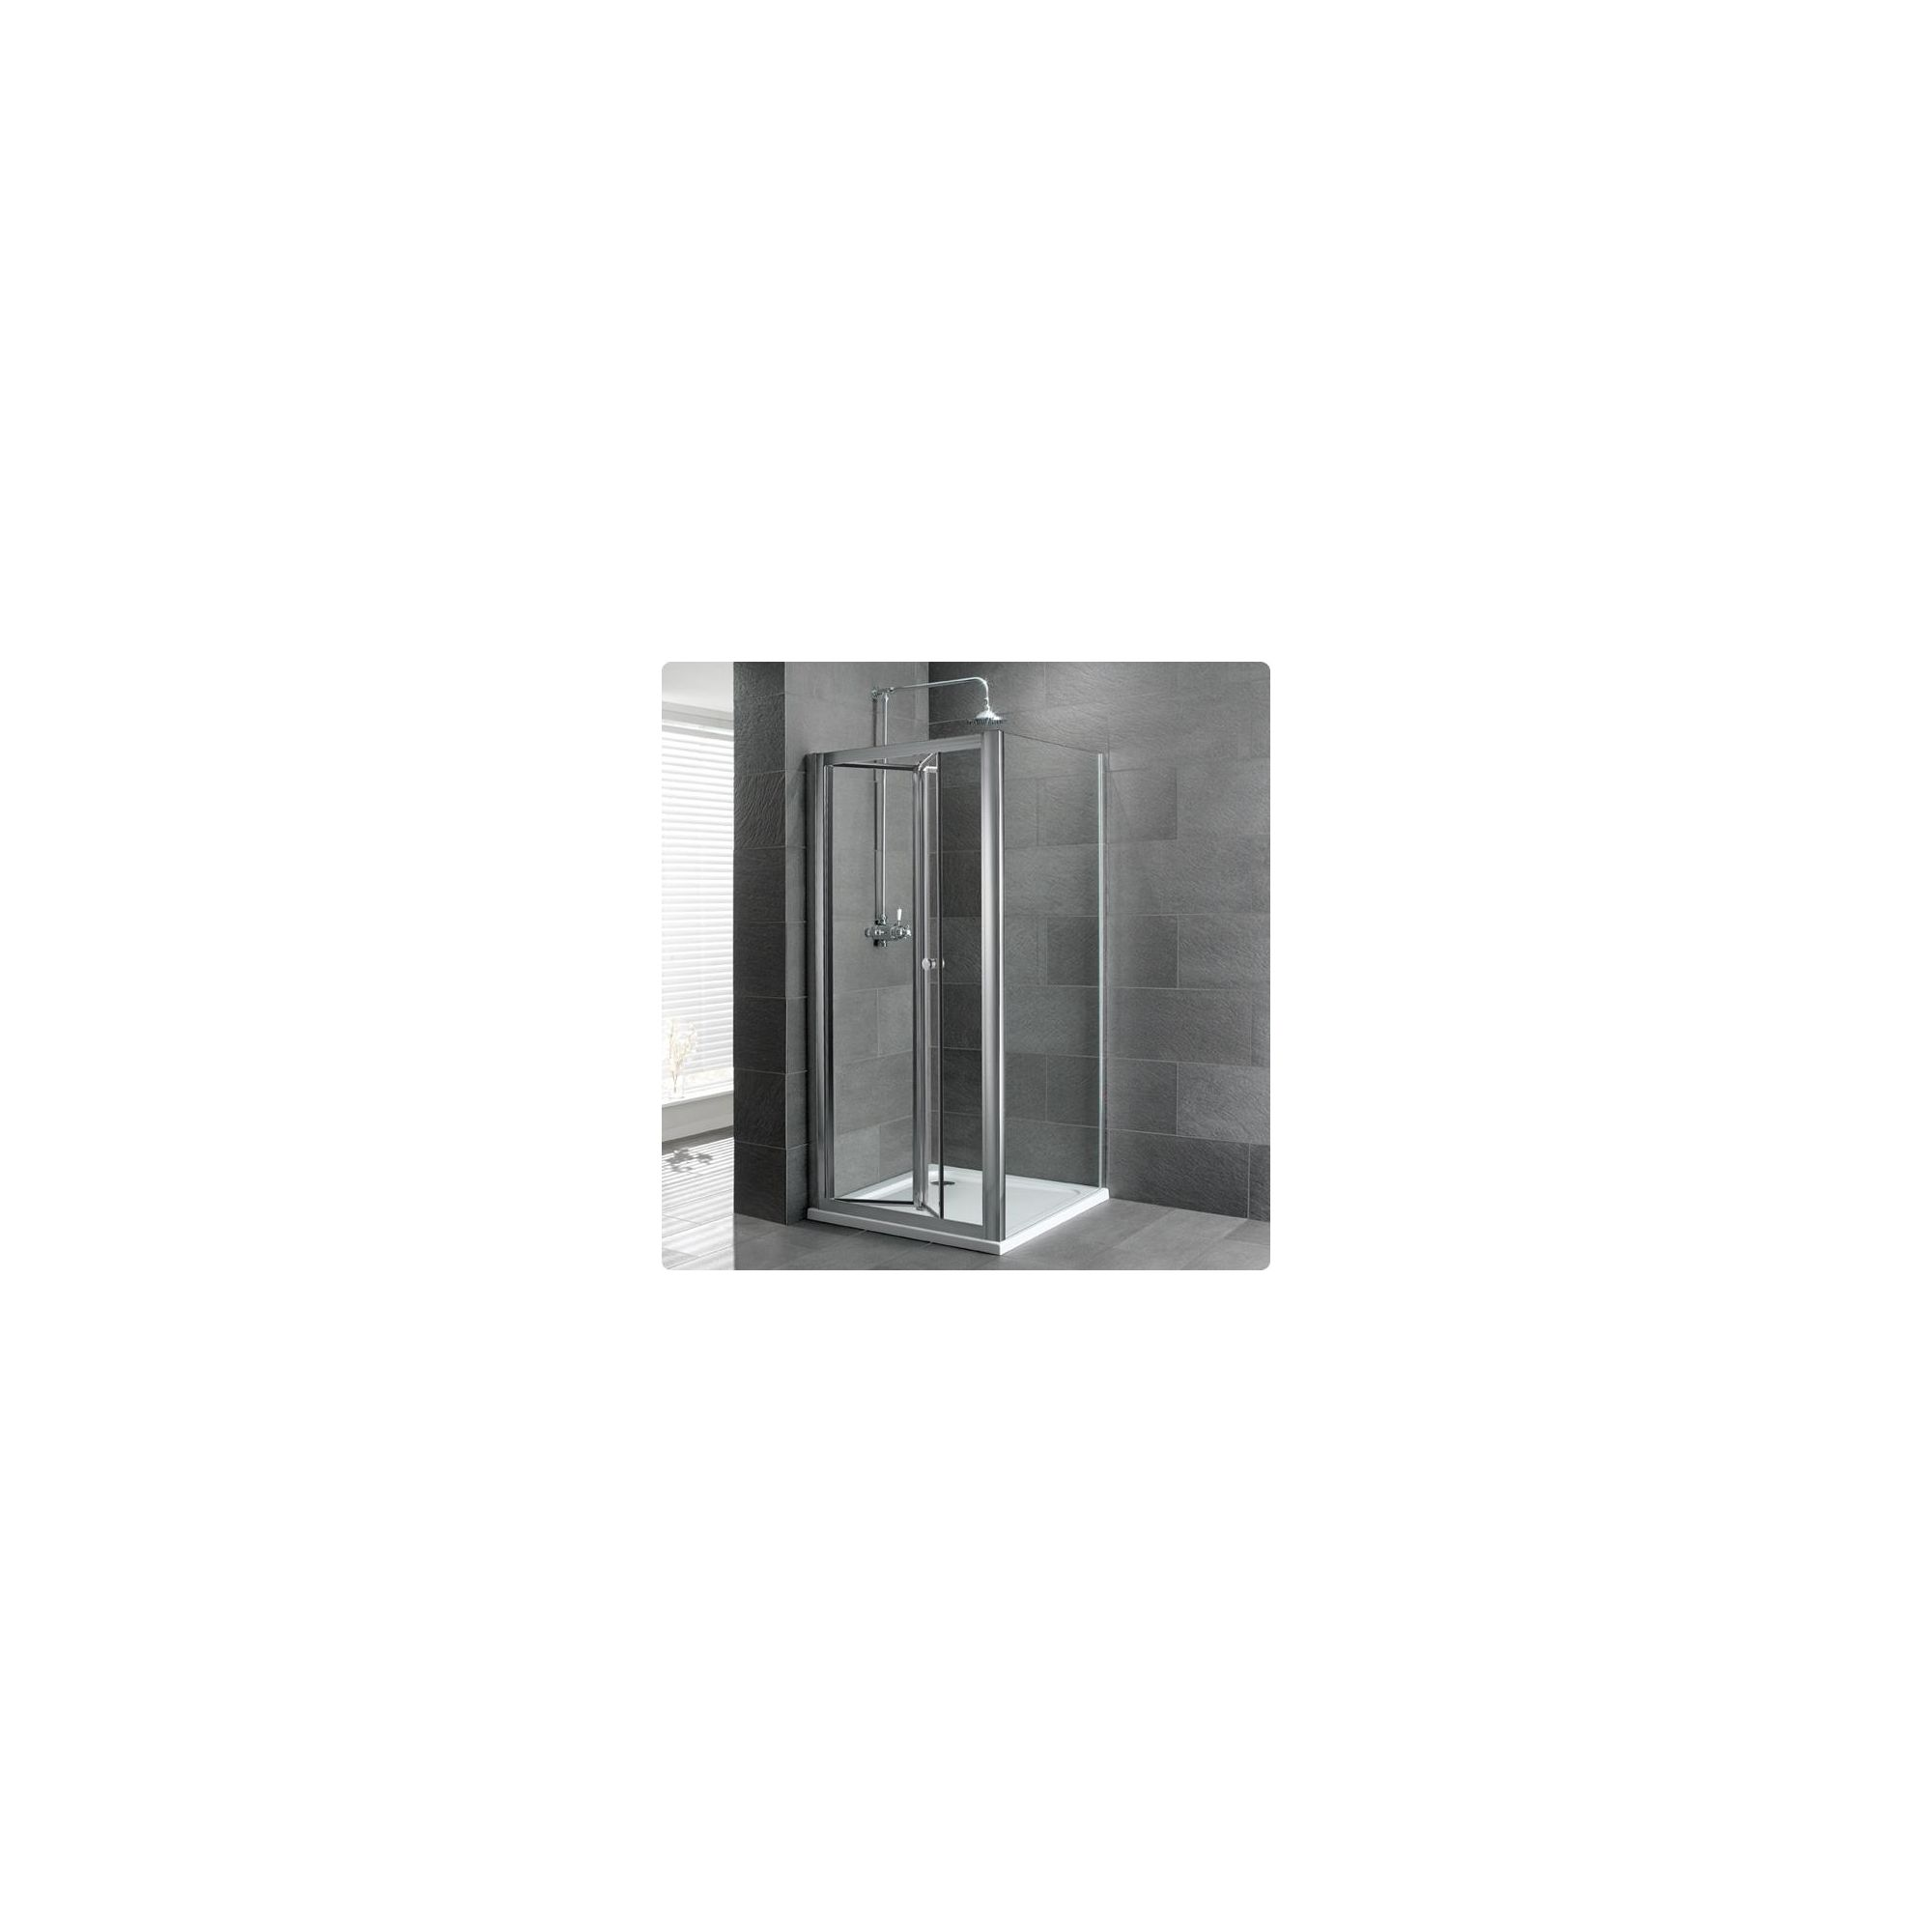 Duchy Select Silver Bi-Fold Door Shower Enclosure, 800mm x 760mm, Standard Tray, 6mm Glass at Tesco Direct